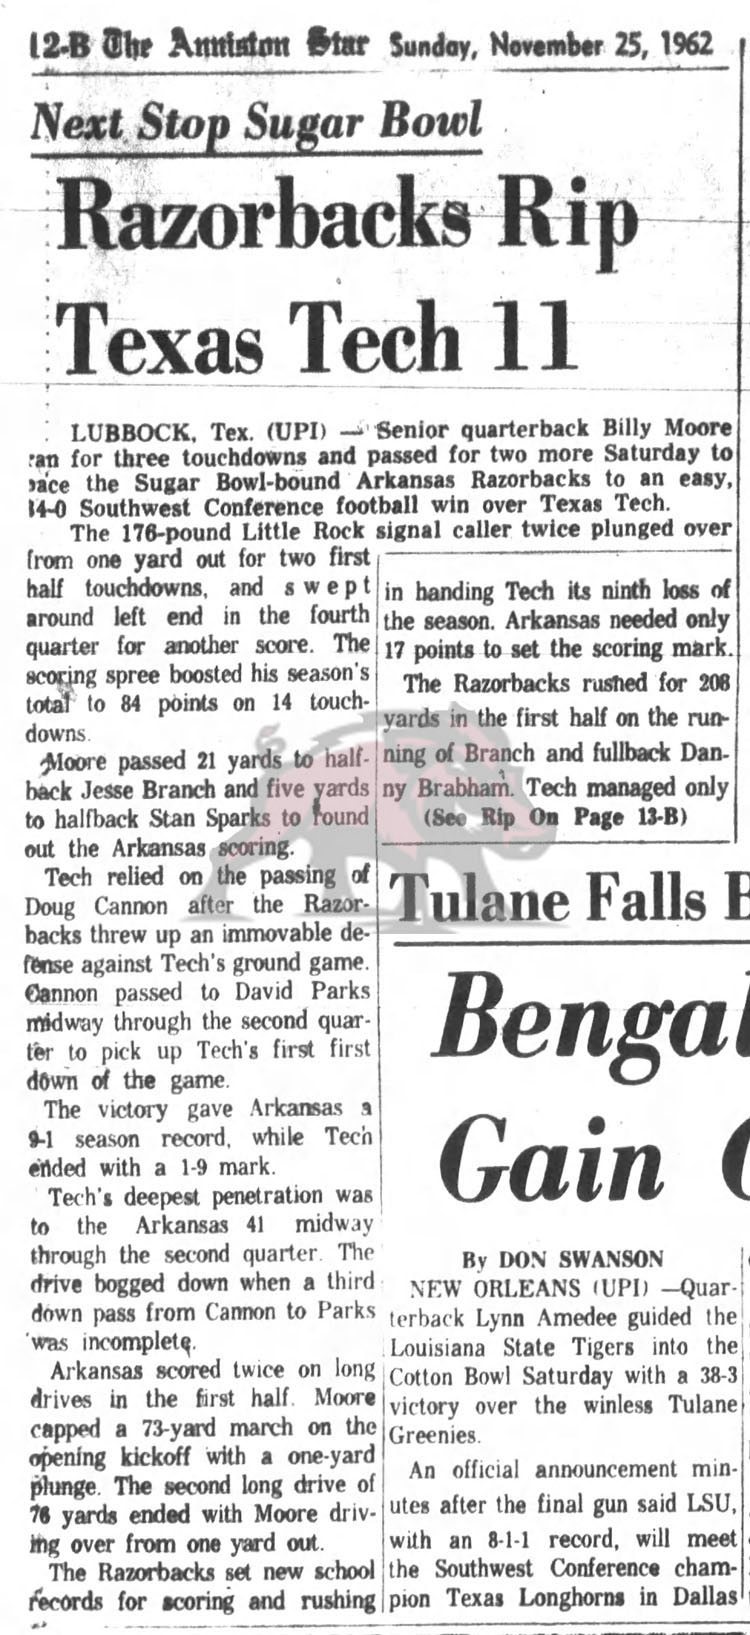 1962-11-25 The_Anniston_Star_Sun__Nov_25__1962 part 1